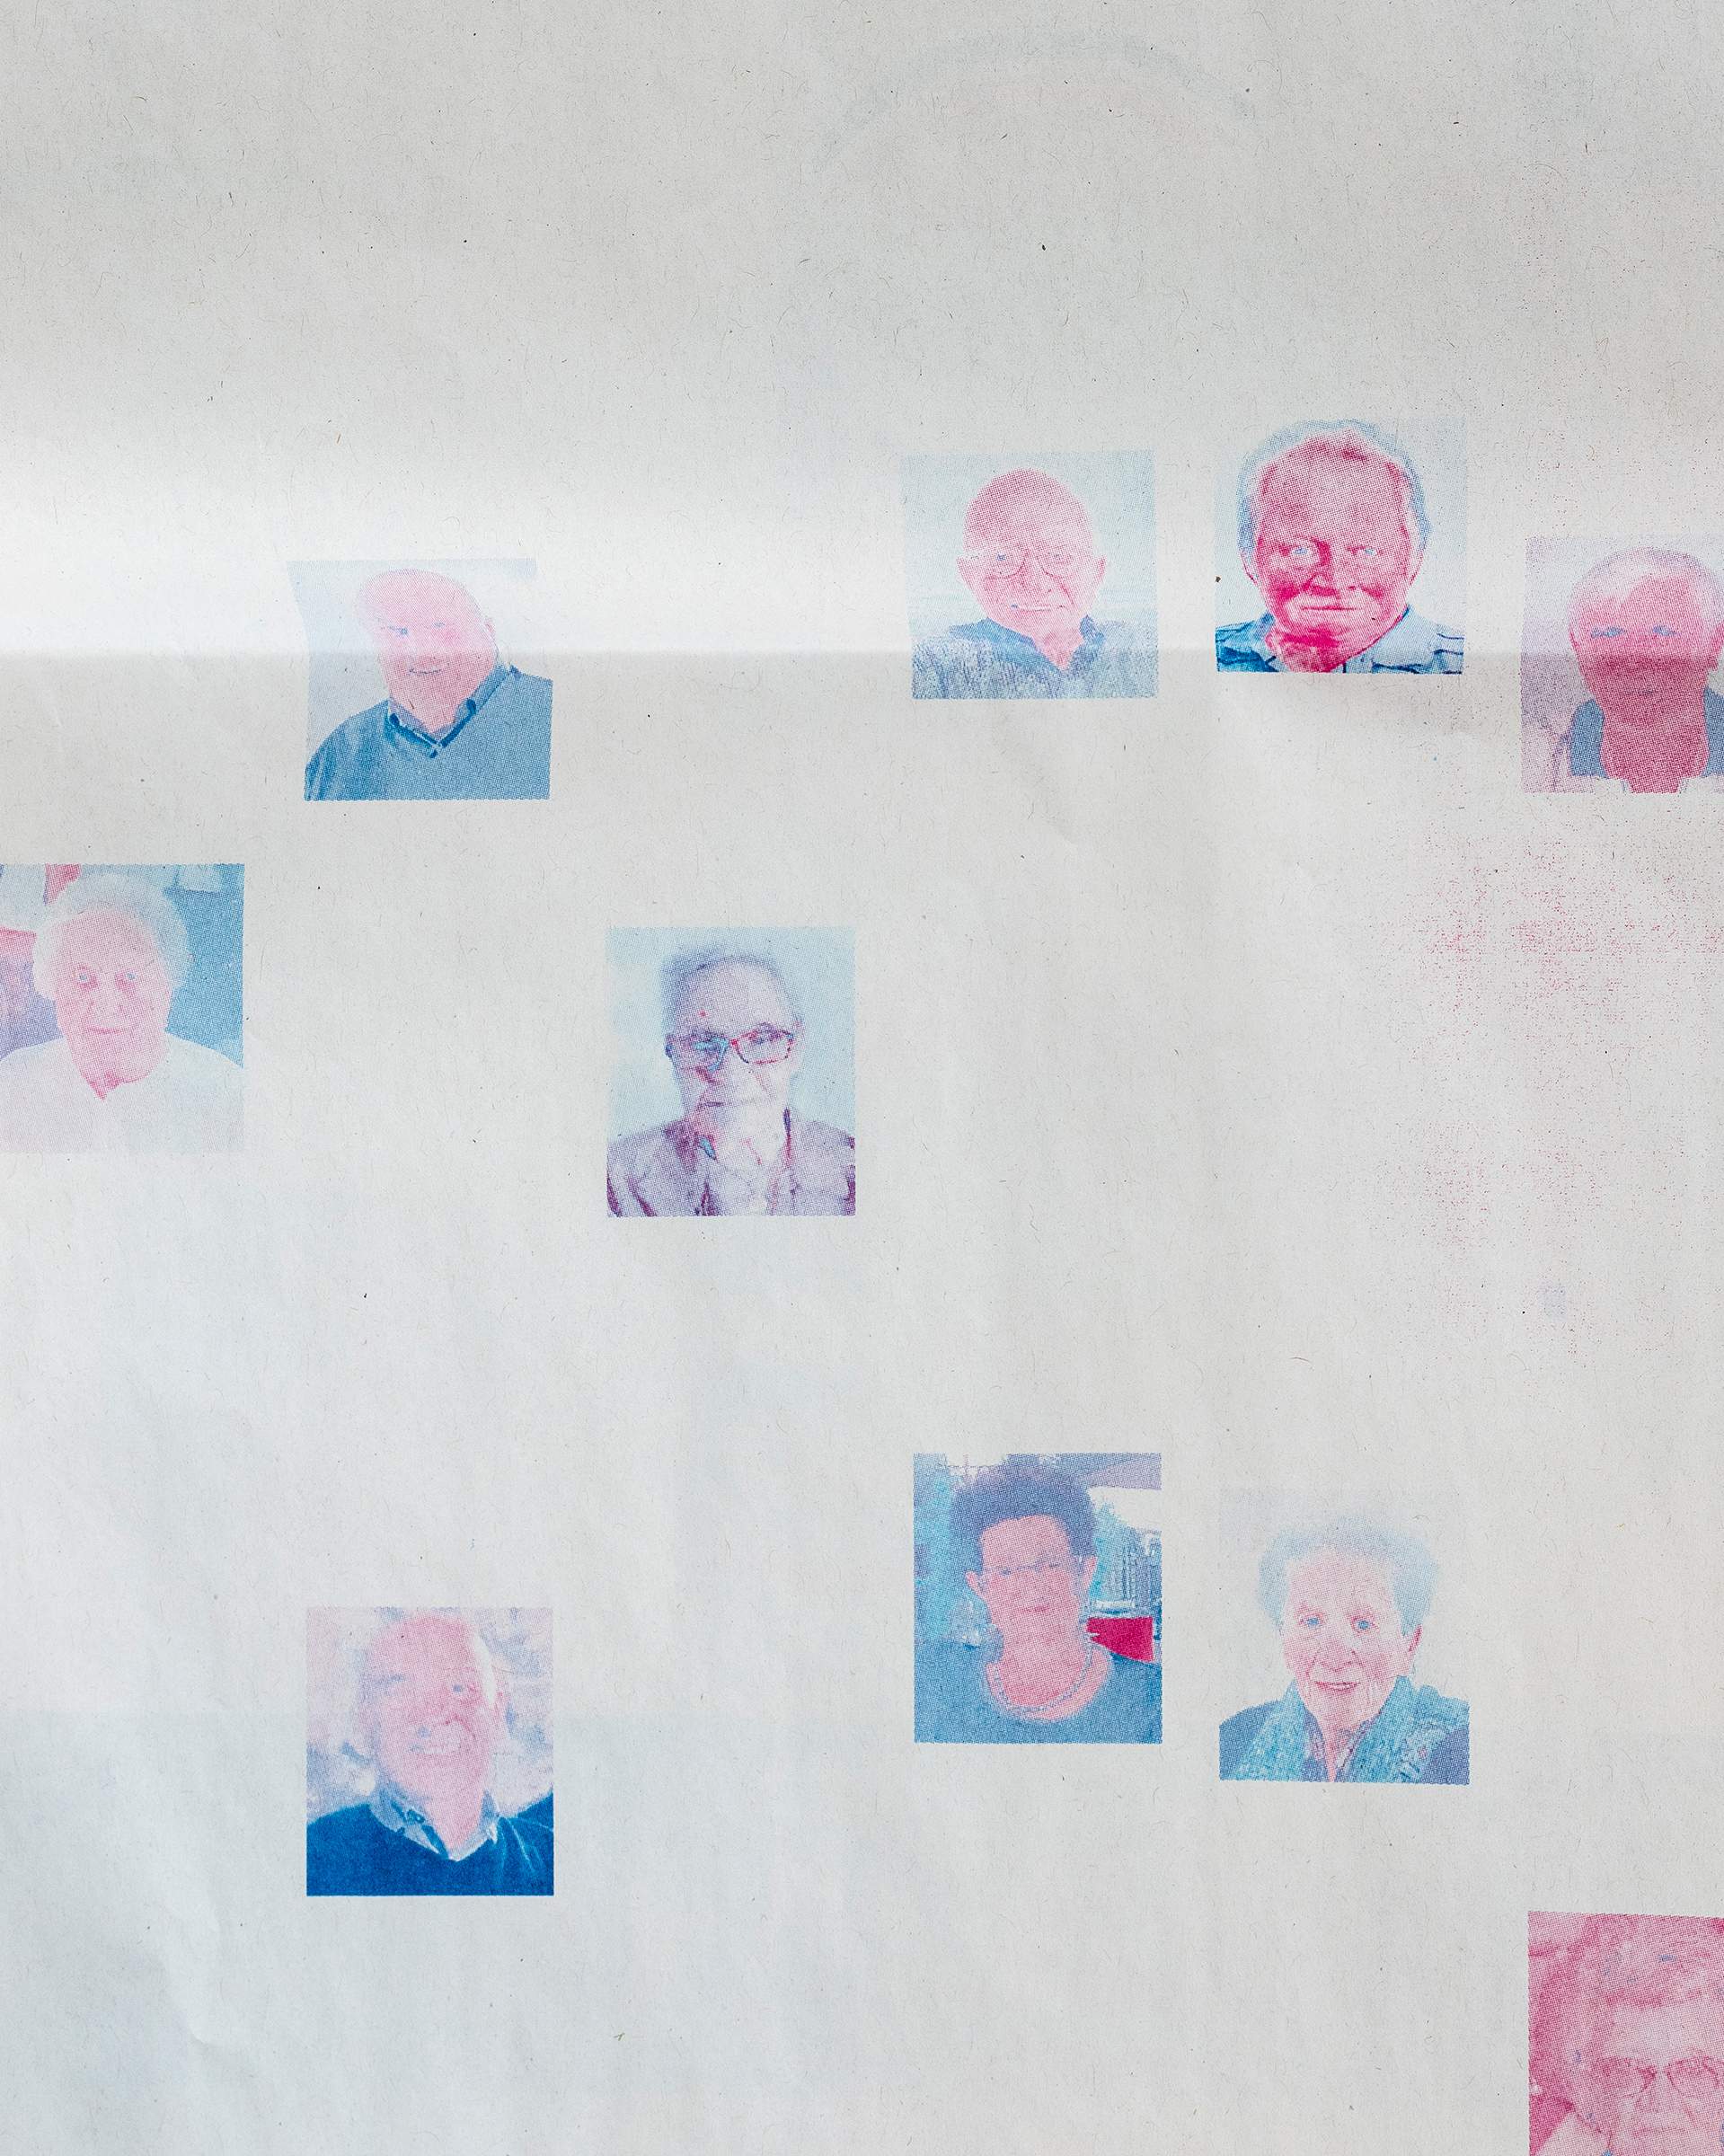 Discolored obituary portraits at the printing plant of L'Eco di Bergamo in Erbusco in April; the newspaper dedicated more pages to accommodate the COVID-19 death toll.